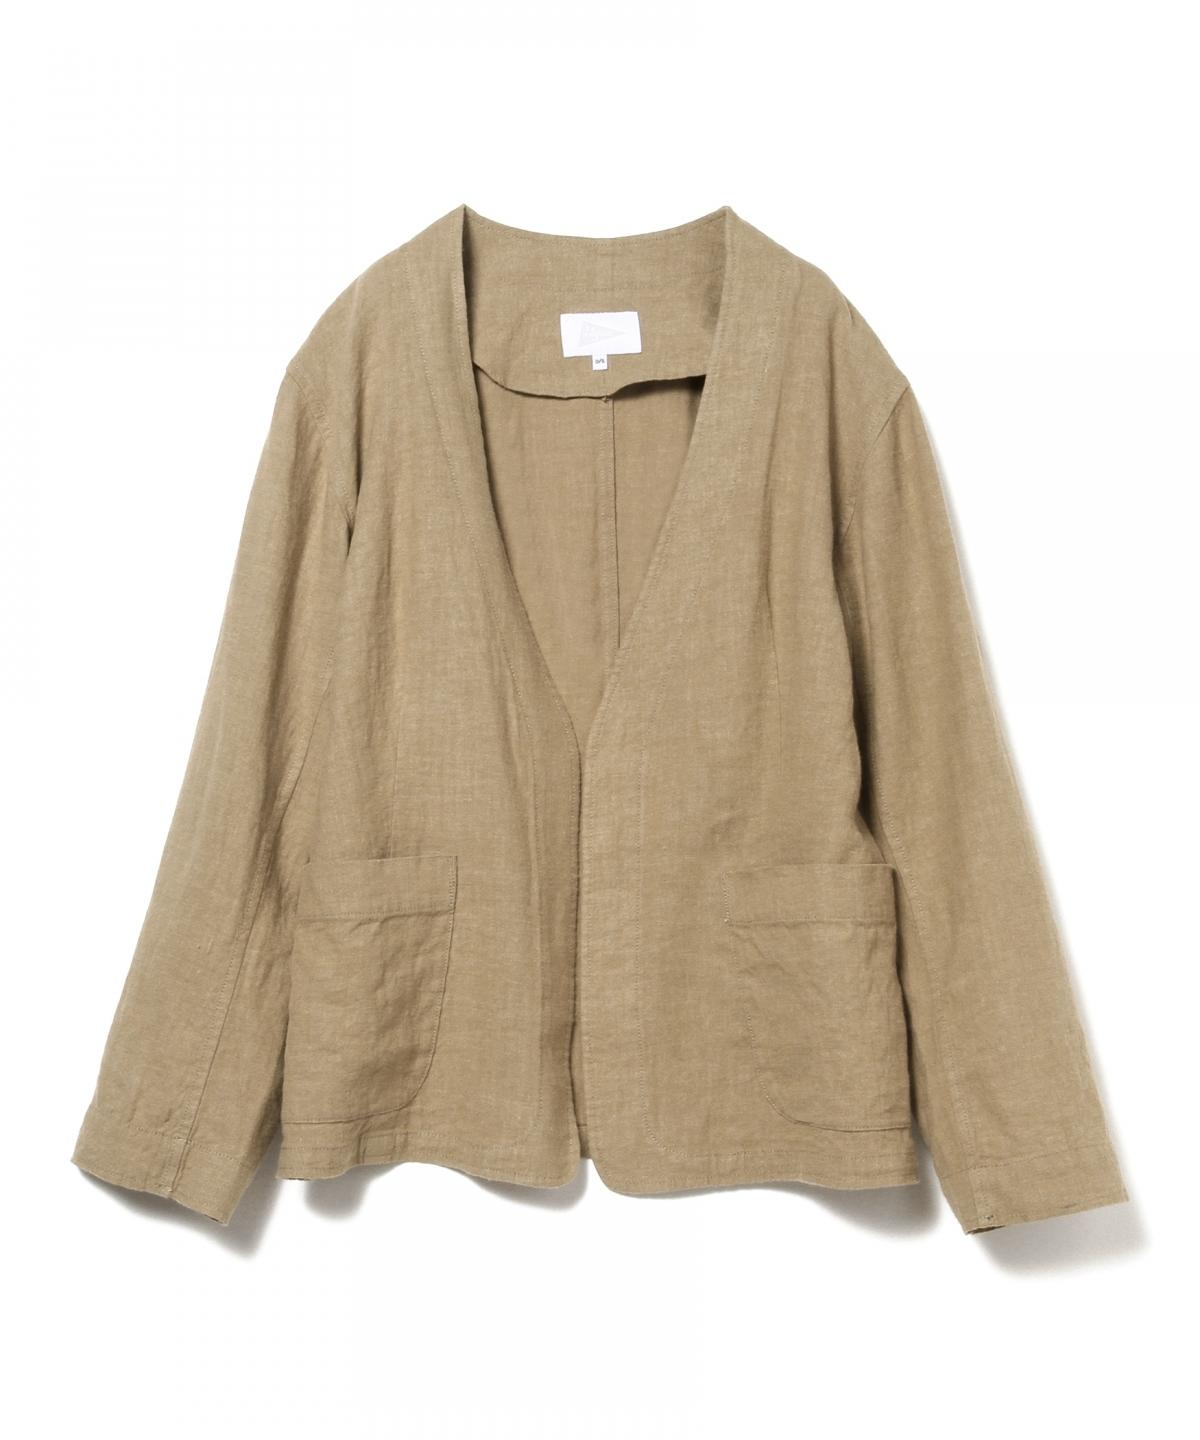 SHIRLEY Hang Jacket